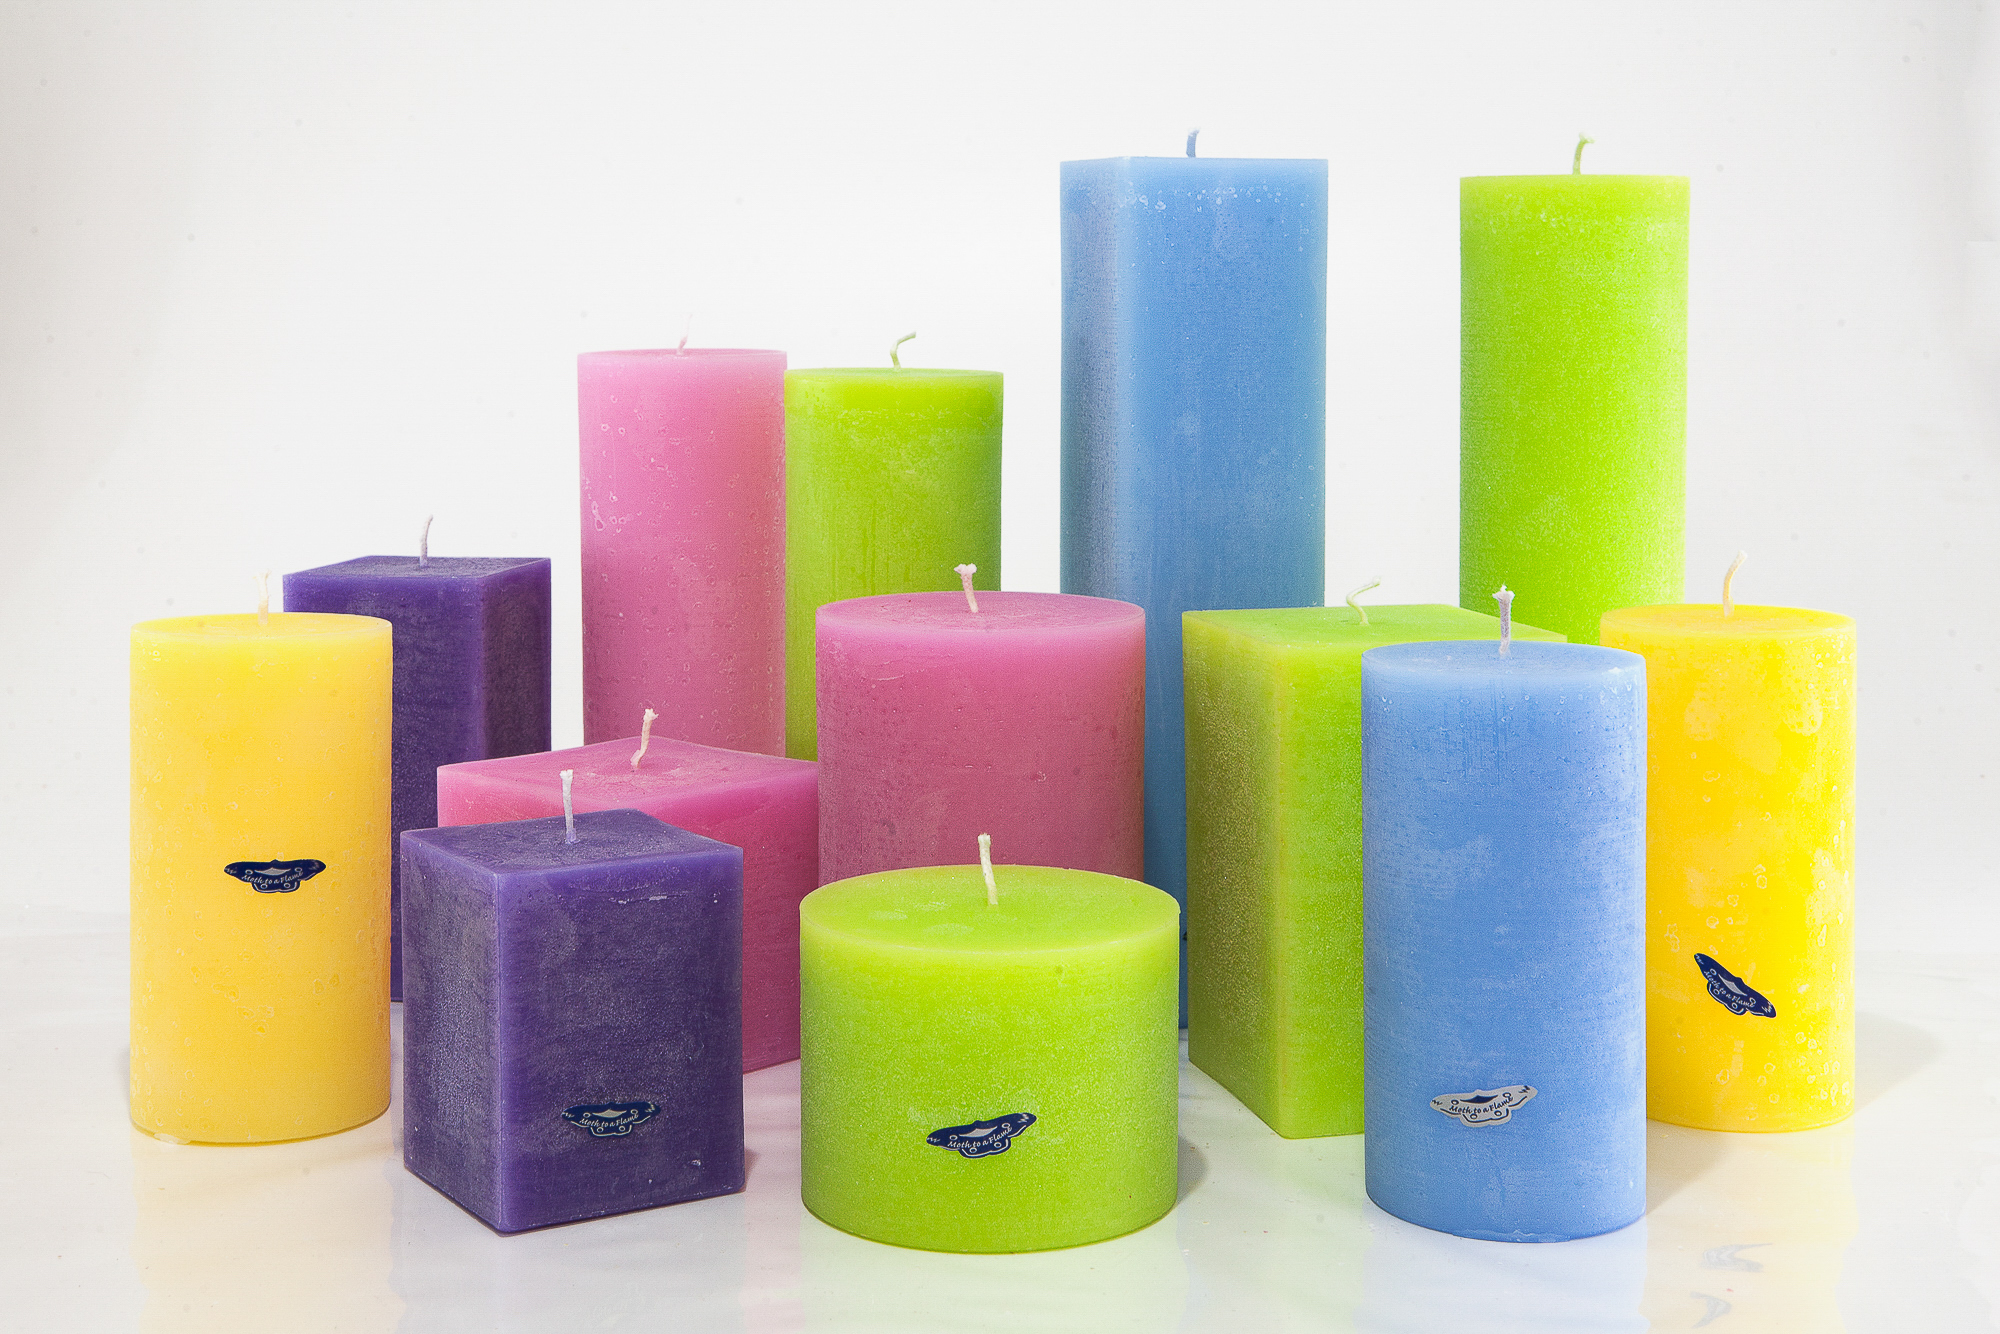 Colour Therapy & Spa candles, Ireland